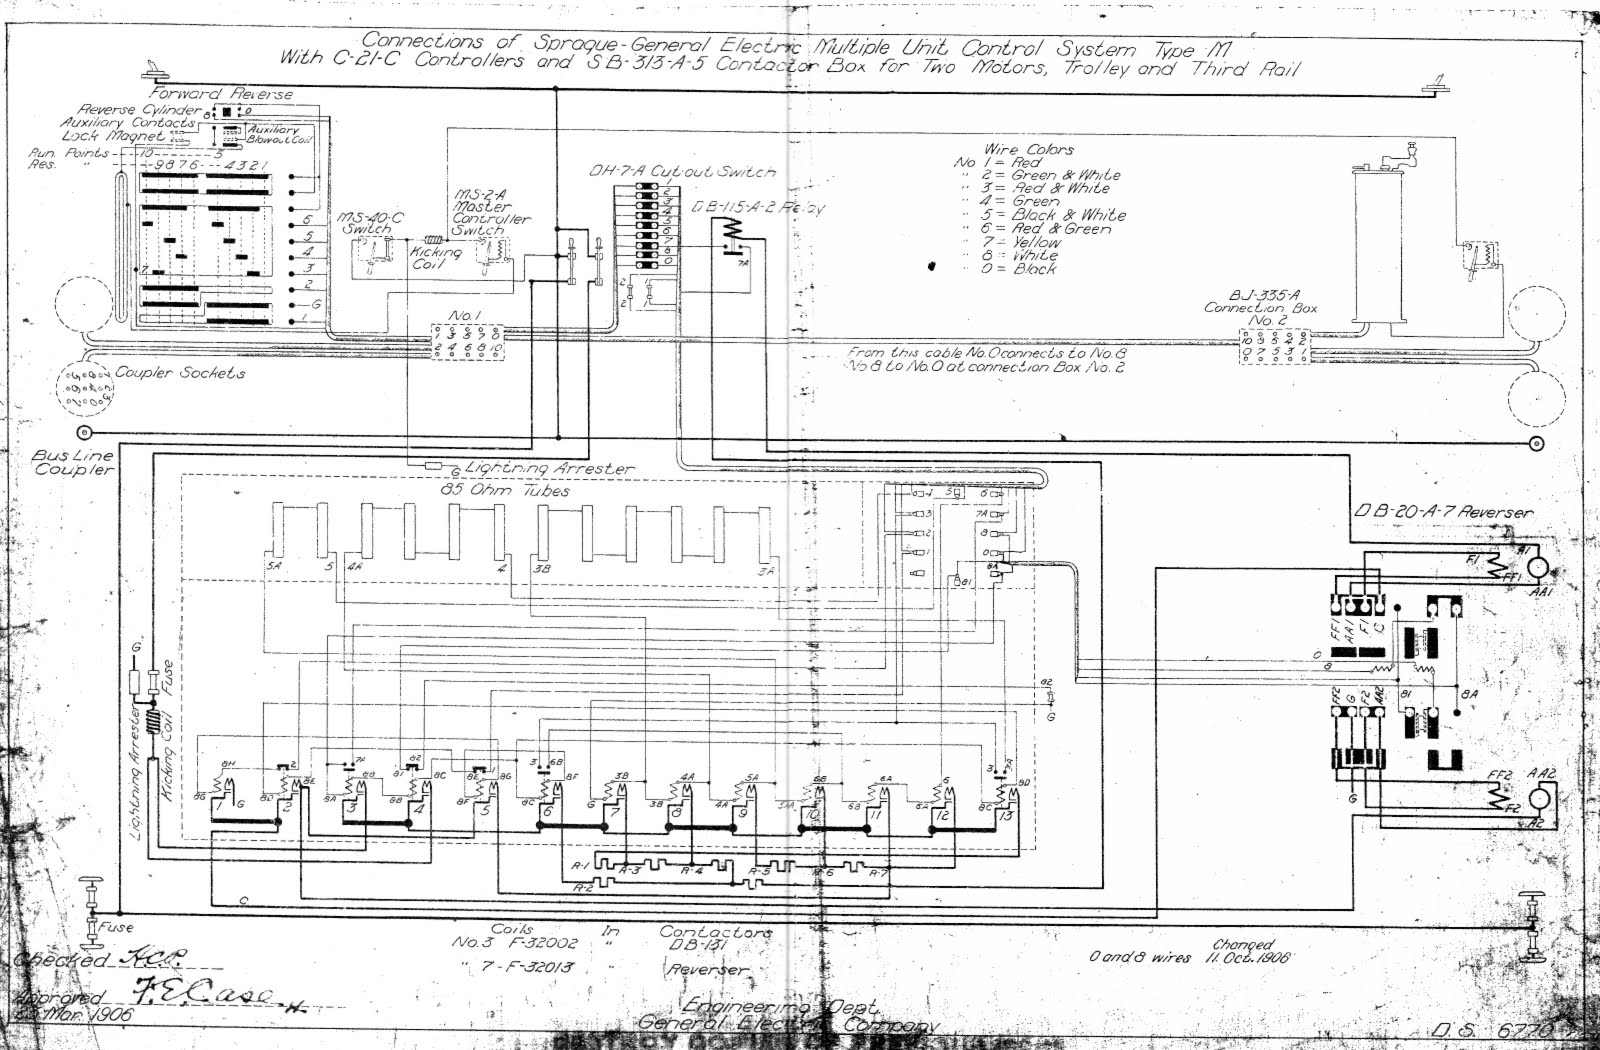 Mack Cx613 Wiring Diagram Mack Cv712 Wiring Diagram ~ ODICIS